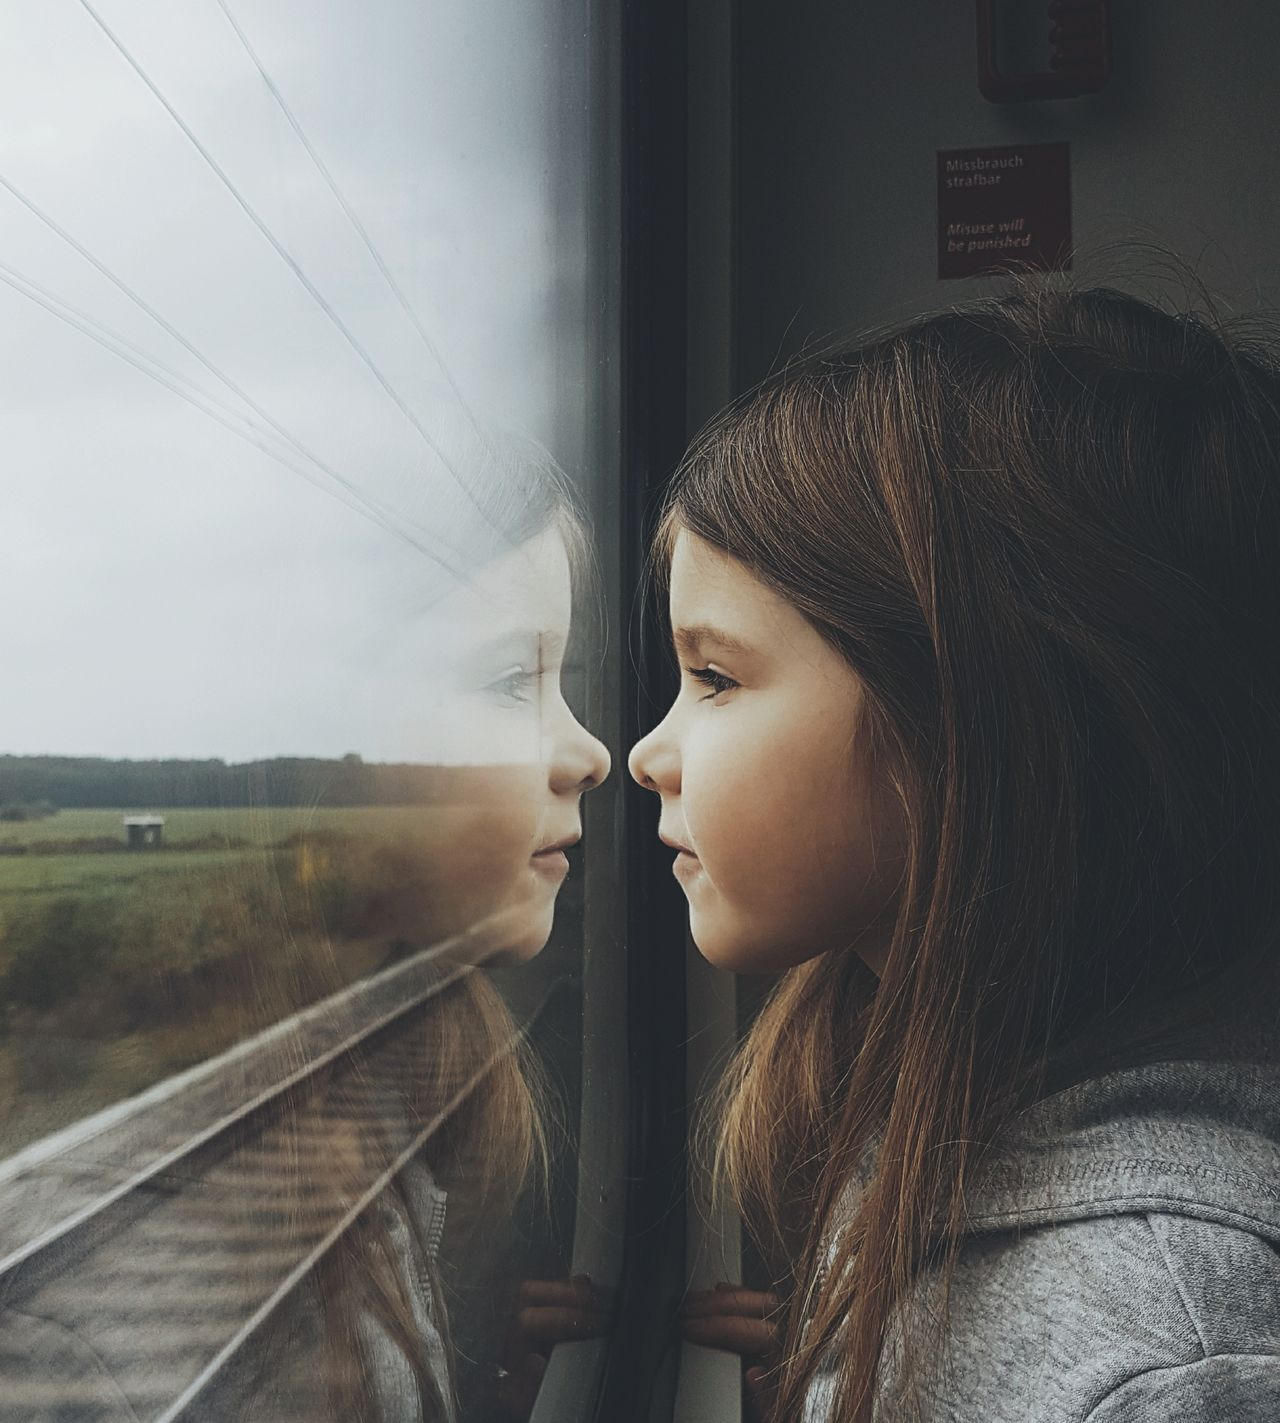 The Portraitist - 2017 EyeEm Awards Looking Through Window Window Railroad Track Train - Vehicle Looking One Person Only Women Fog People Beauty Adult One Woman Only Child Young Adult Females Young Women One Young Woman Only Sky Day Outdoors Eye4photography  EyeEm Best Shots Reflection